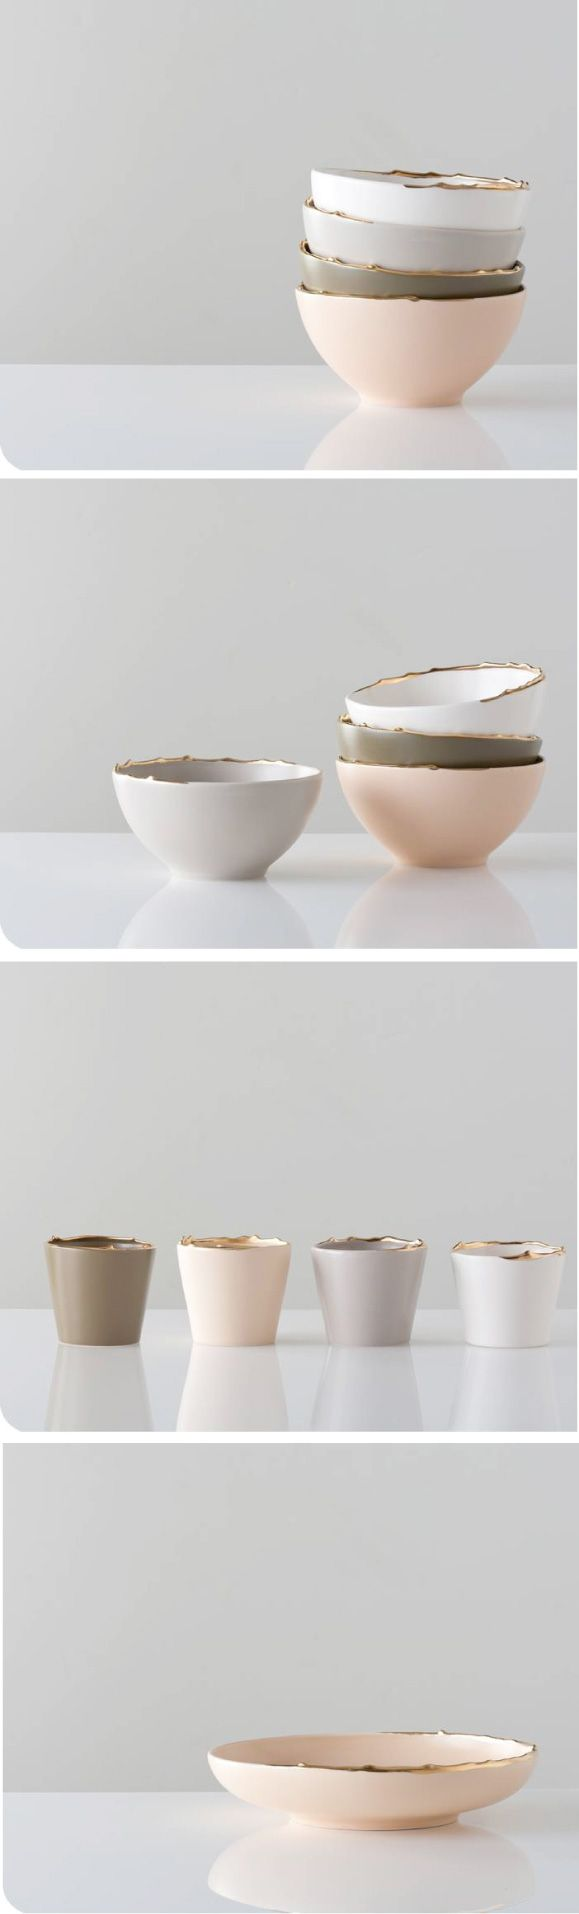 gold rimmed ceramics - so pretty and I love the colors.www.mamatothemax.nl